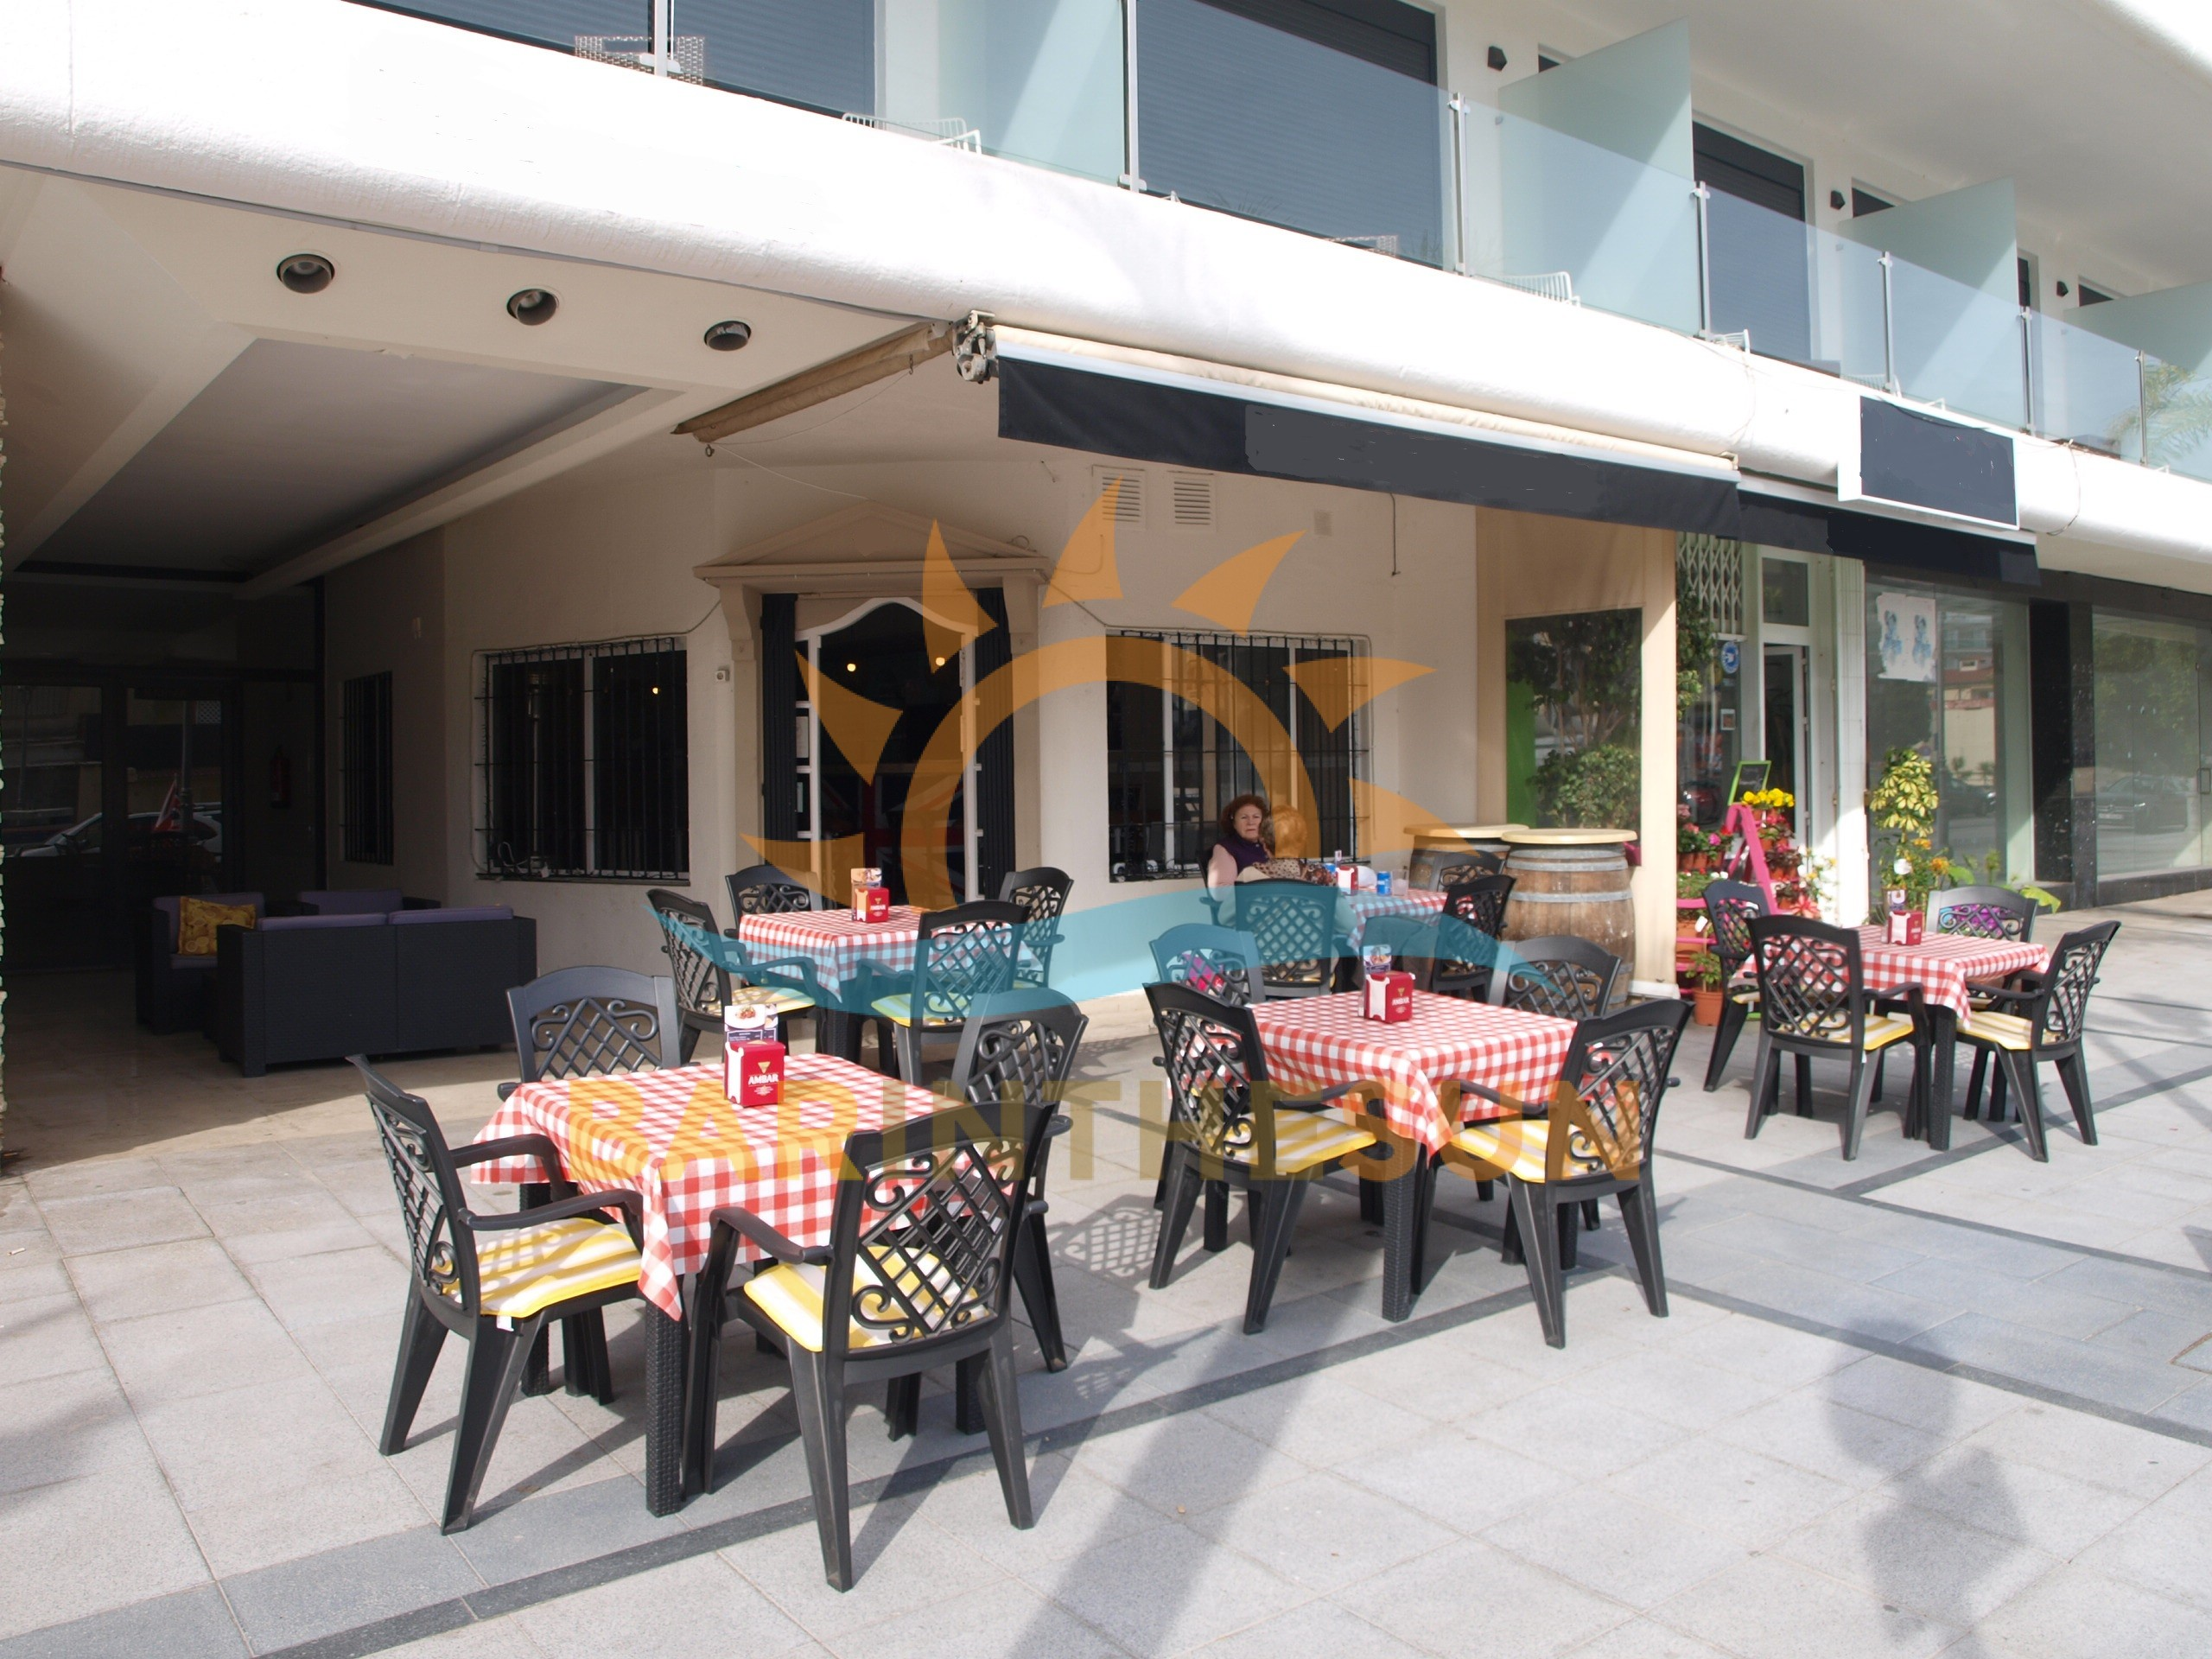 Bars For Sale in Spain, Cafe Bars For Sale in Torremolinos on The Costa Del Sol